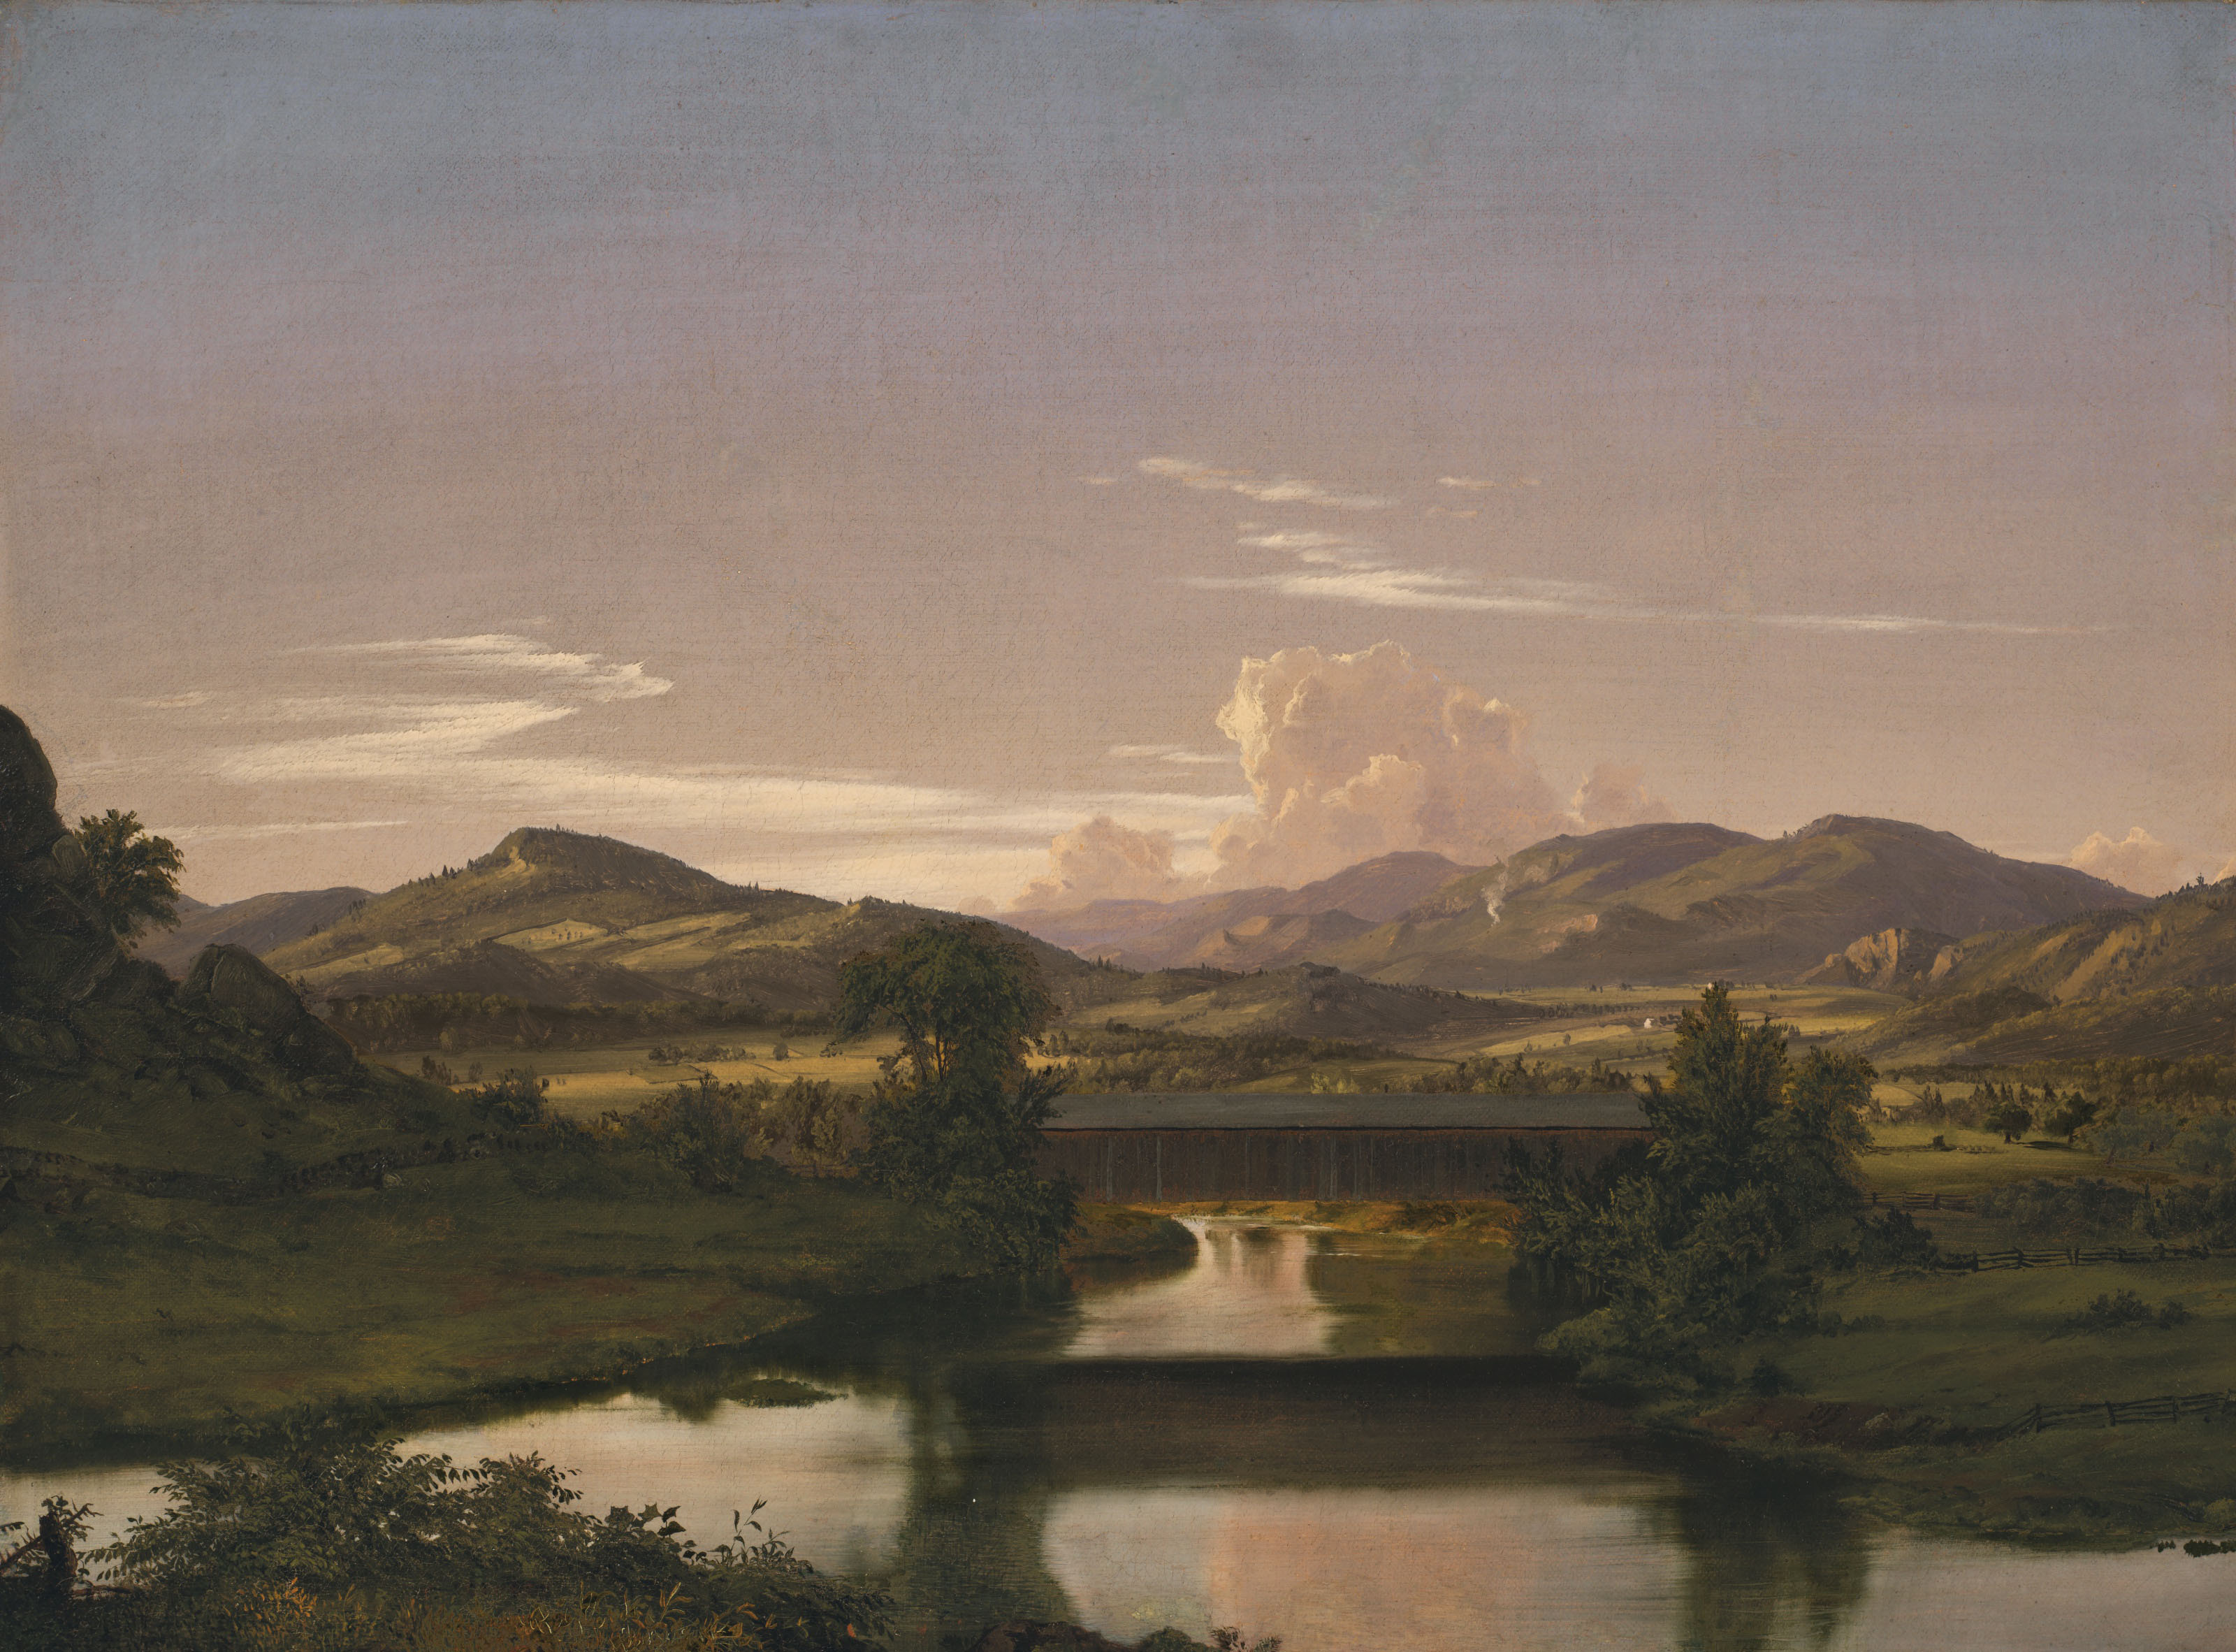 To Fund Refugee Aid, Christie's Will Sell Private Collection of Hudson River School Paintings